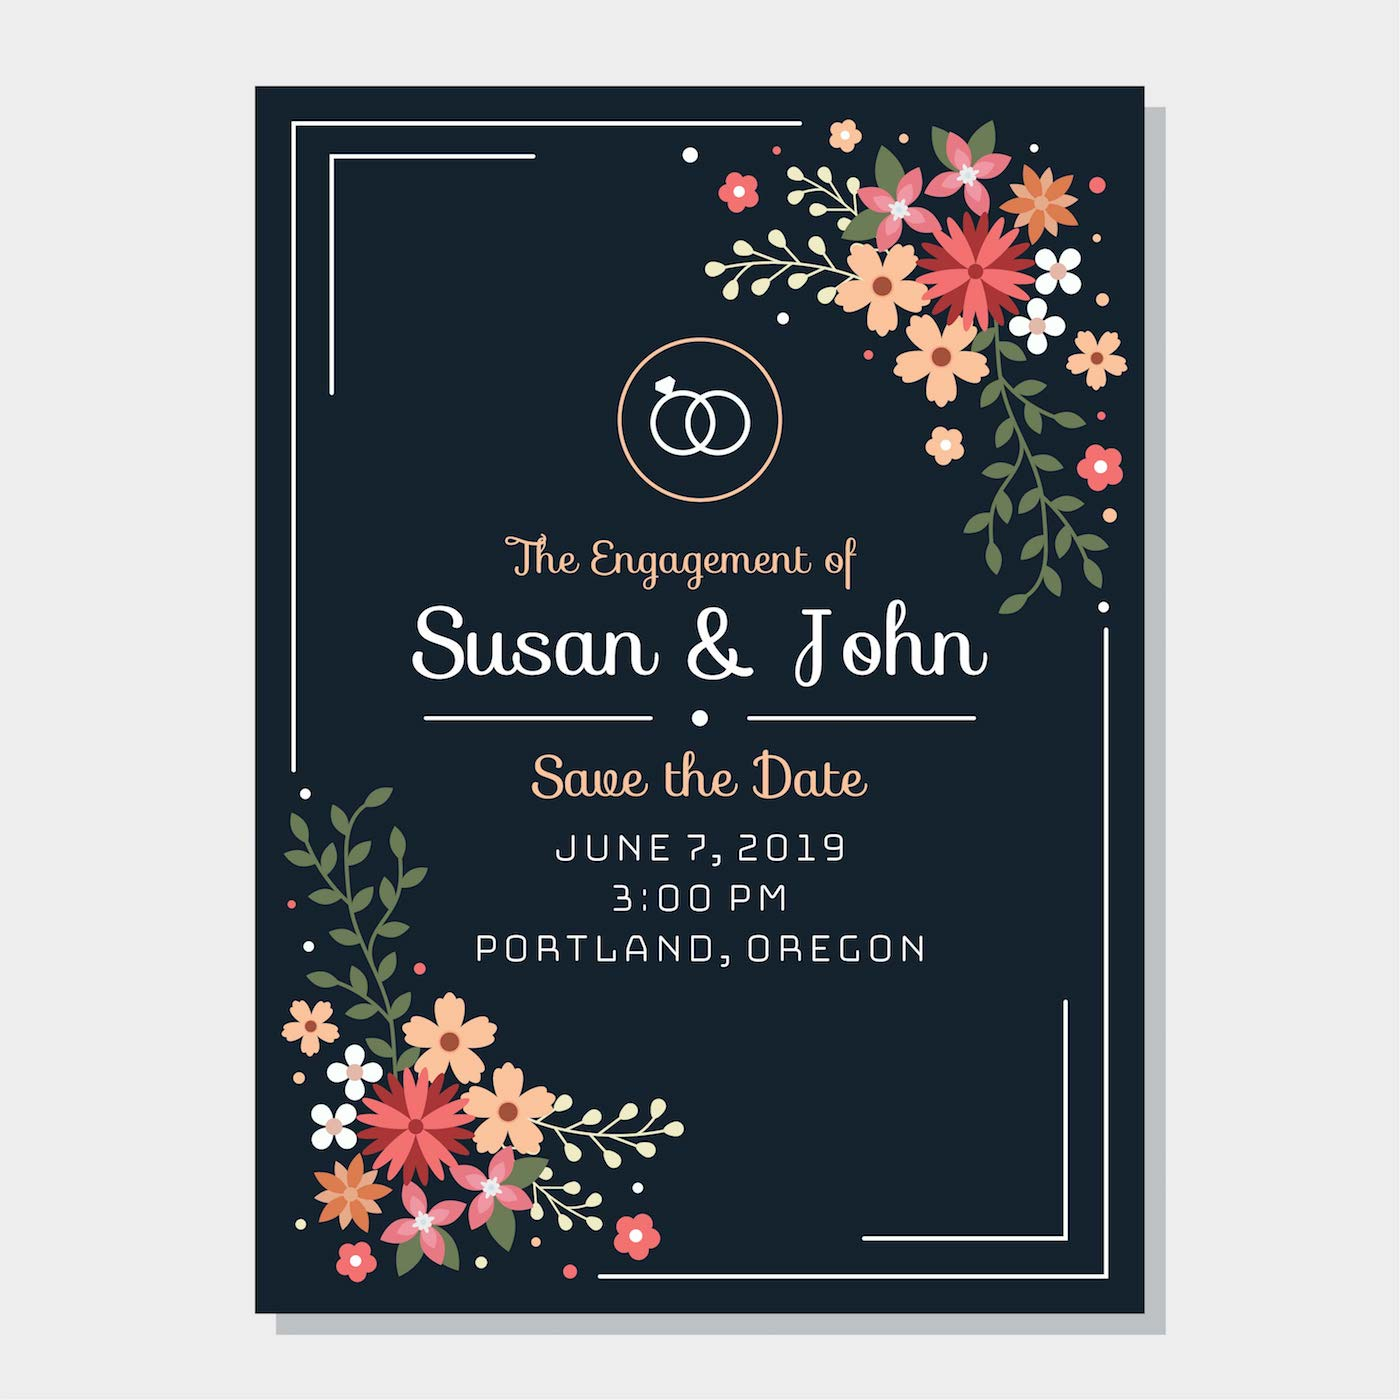 Invitation Card Template Video: Engagement Invitation Free Vector Art